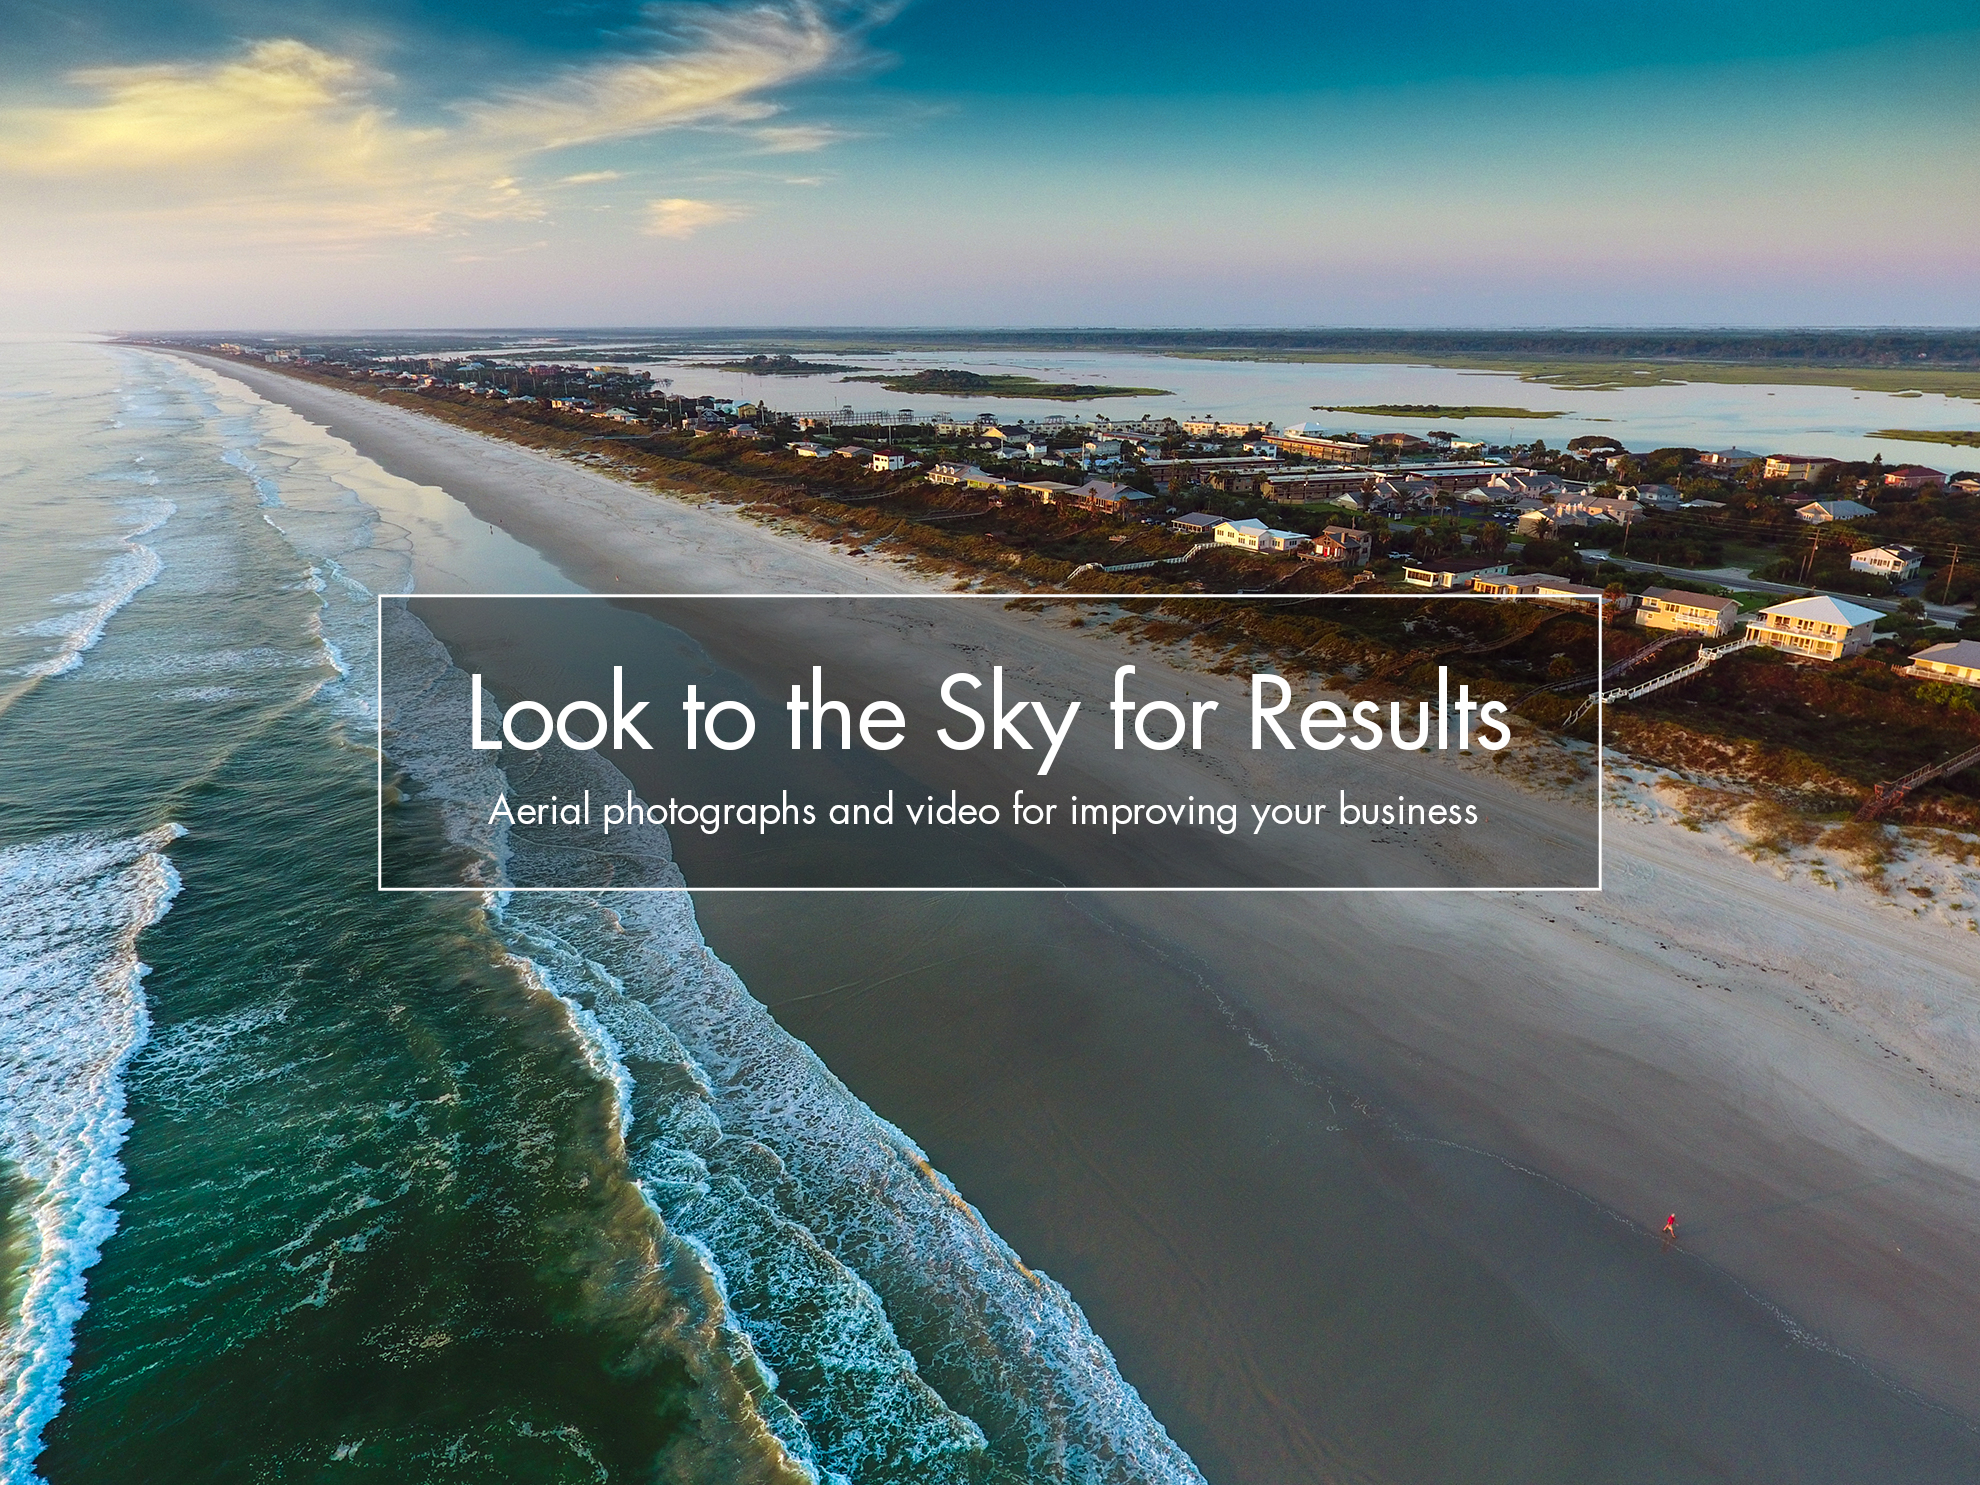 The Sky G Team is passionate about aerial imaging projects that help better understand, protect and positively impact our planet's natural resources for the future.